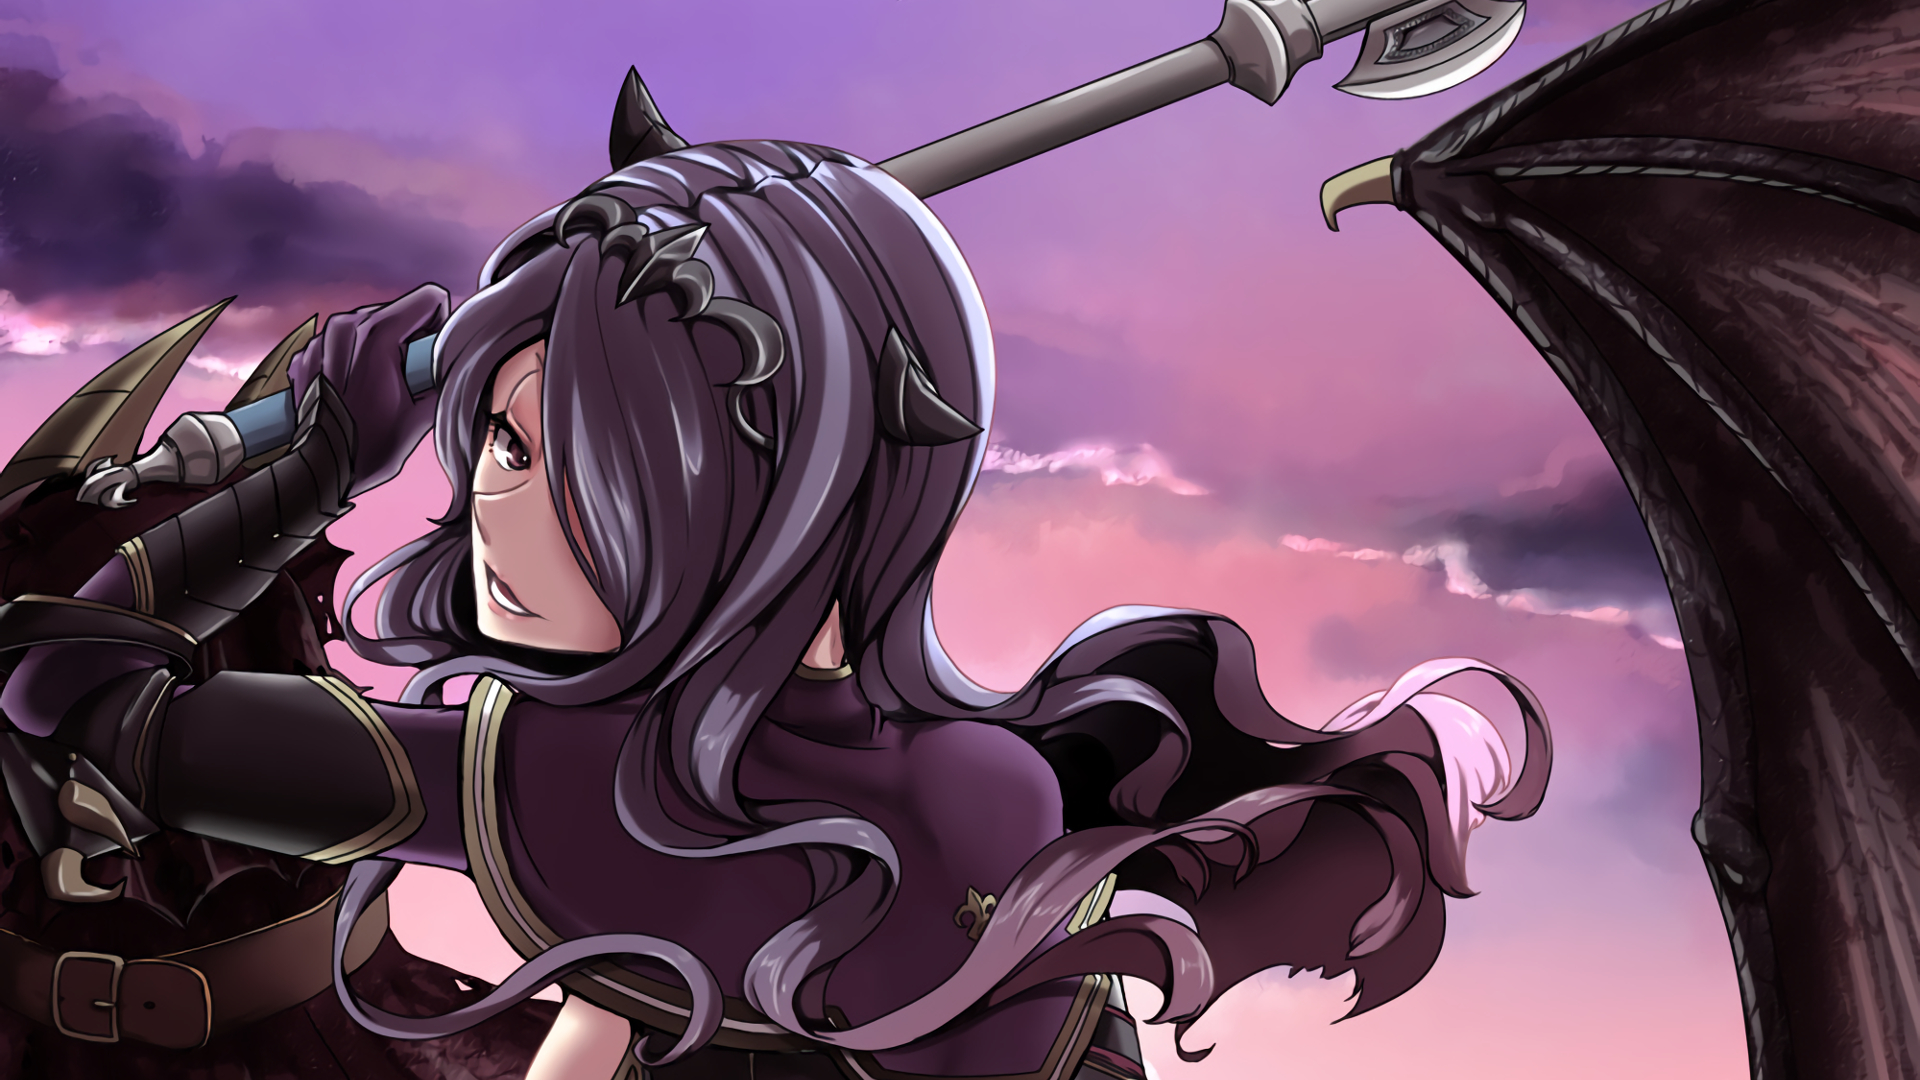 azura and camilla wallpaper - photo #19